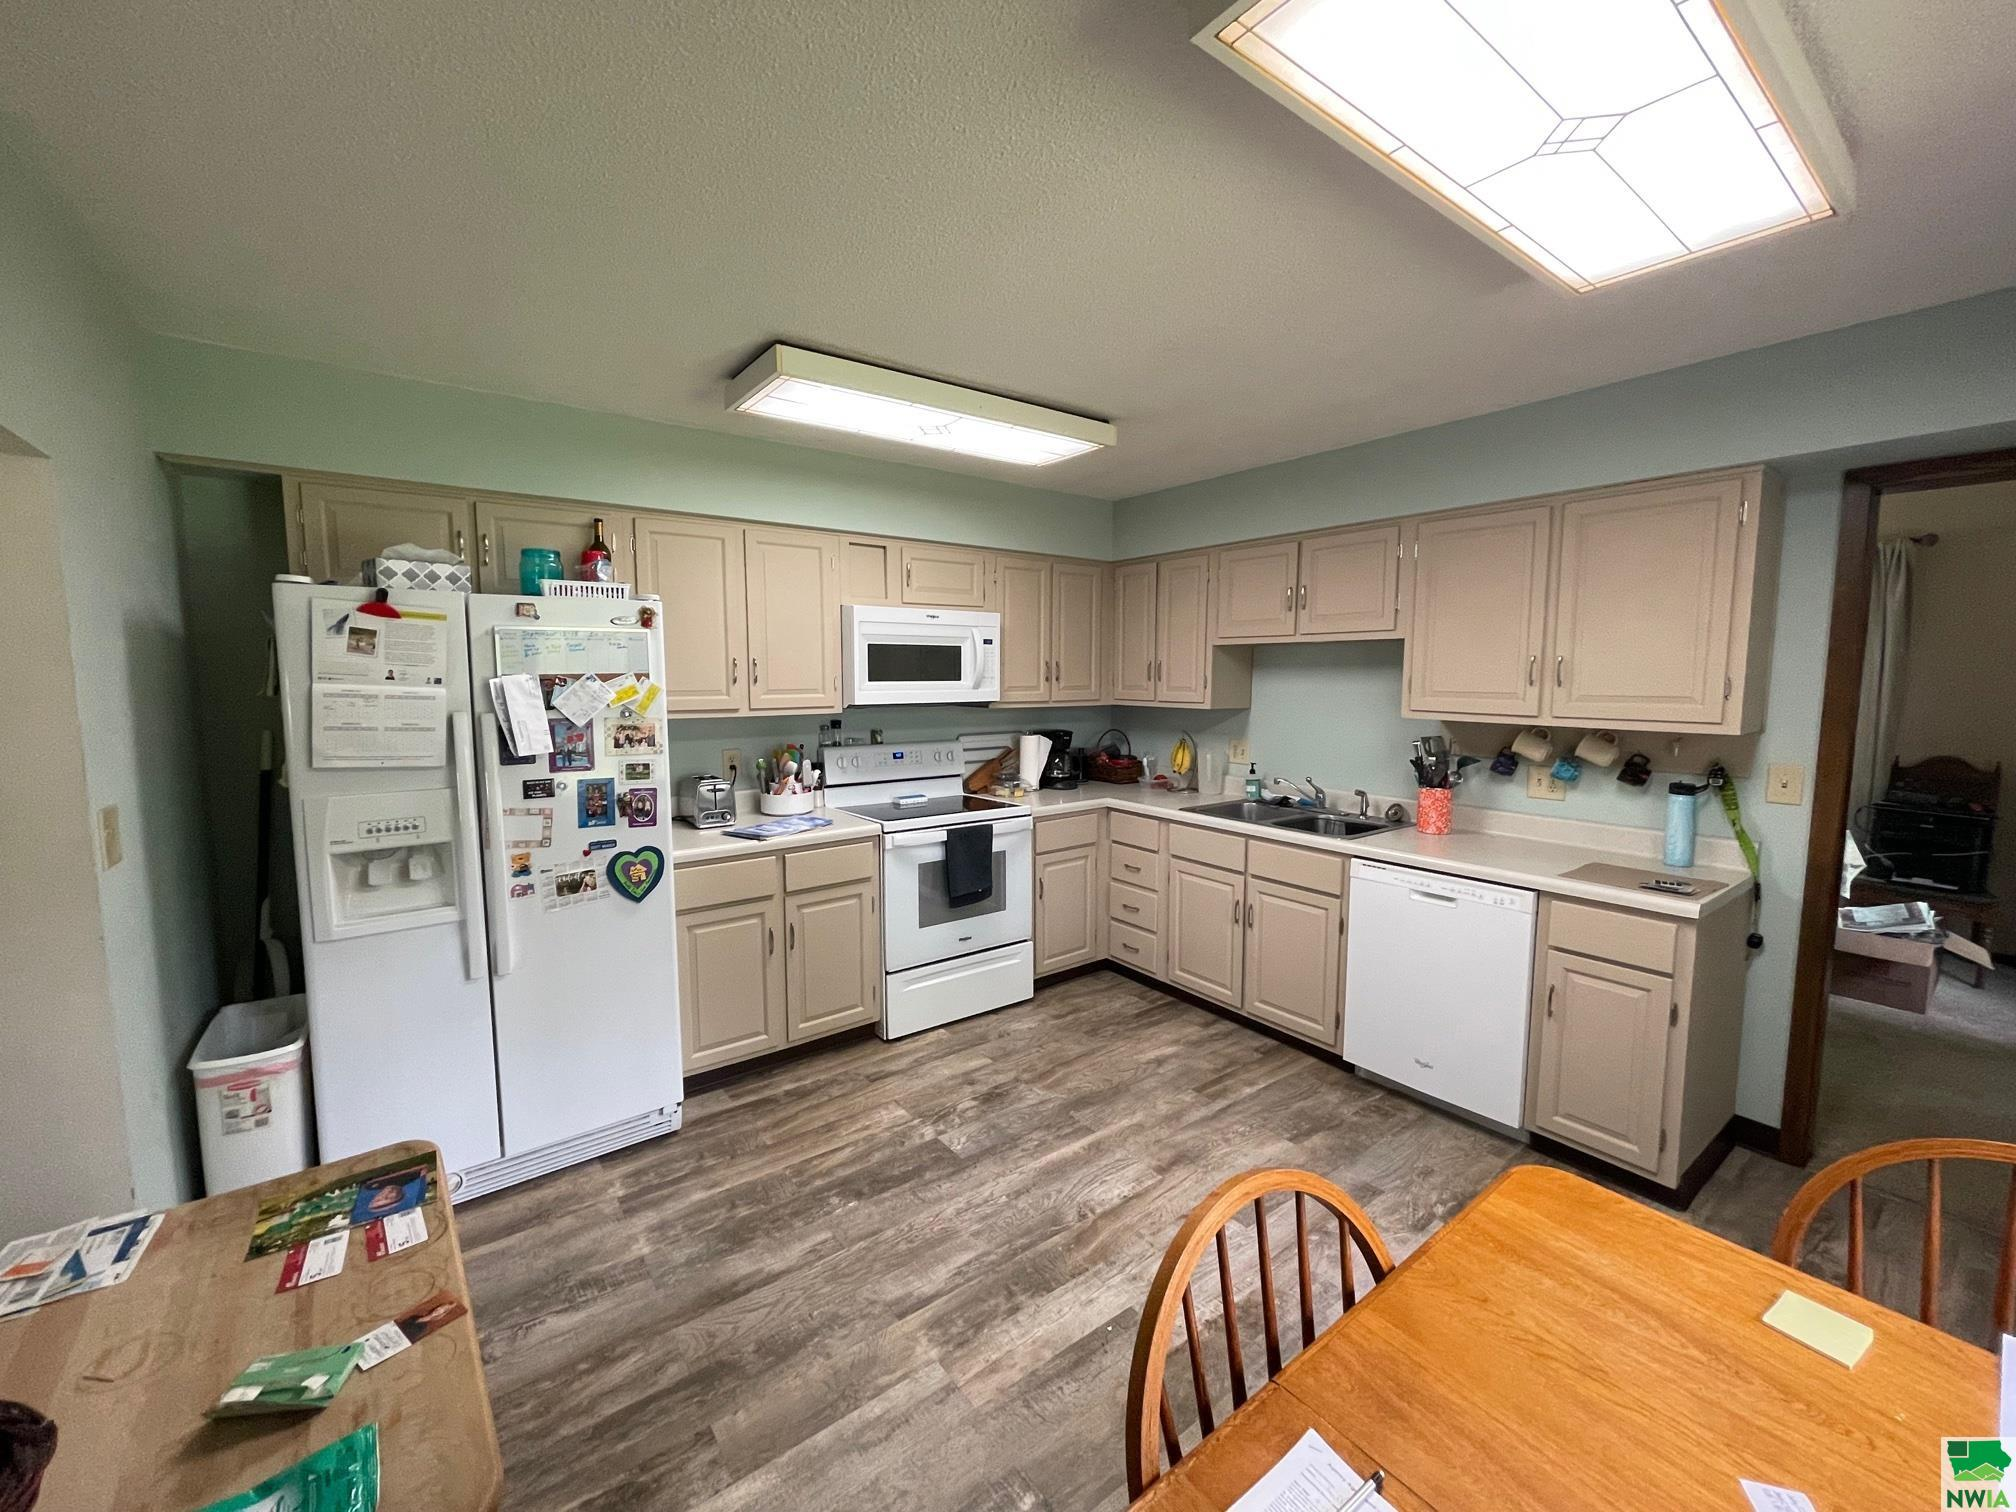 MLS# 814768 for Sale